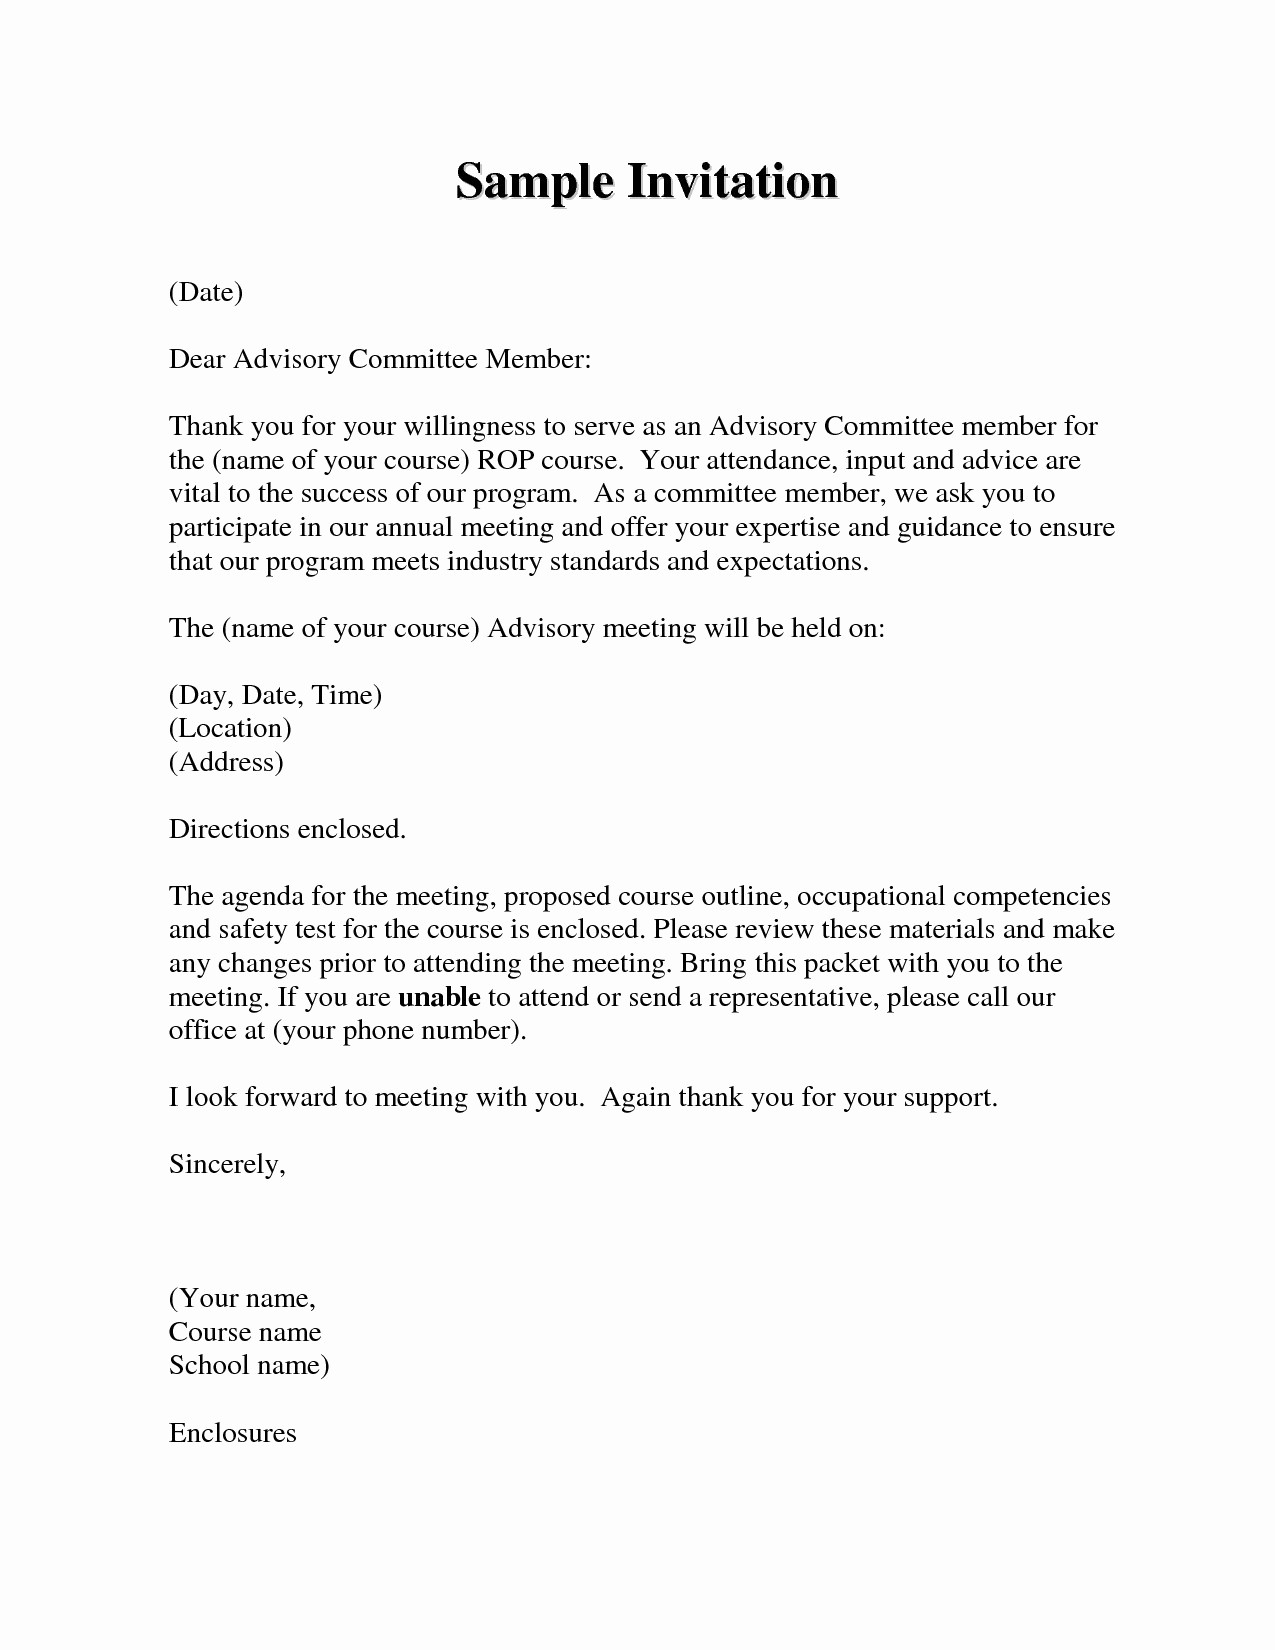 Sample Letters to Board Members Best Of Board Member Invitation Letter Template Samples